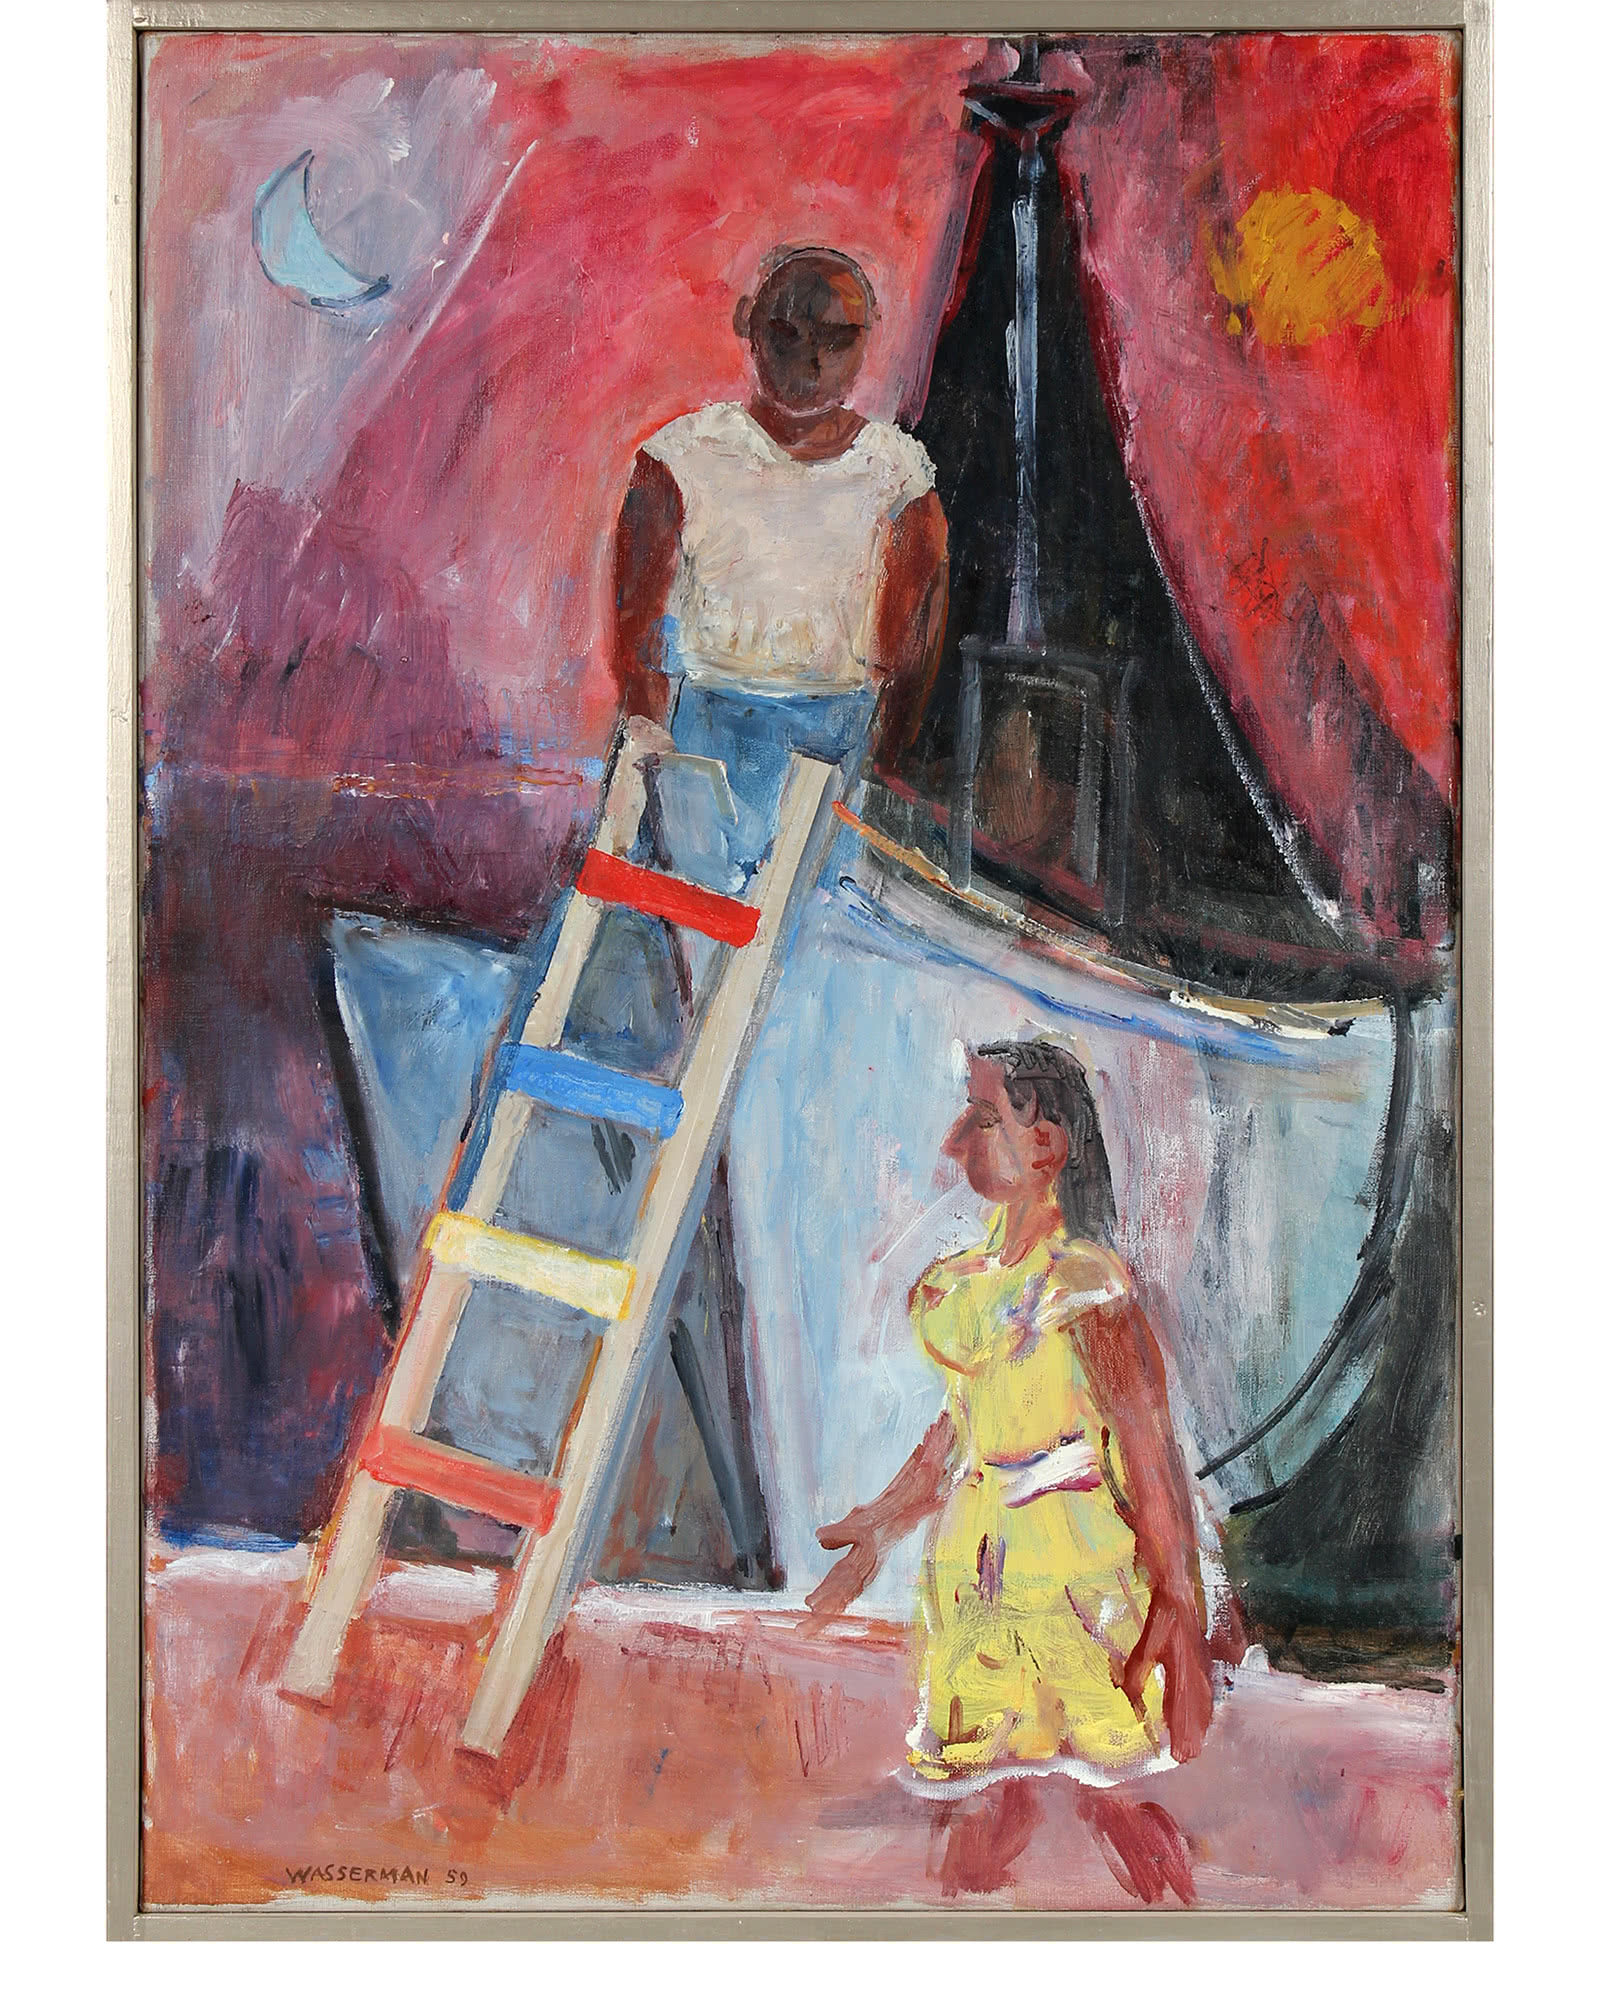 The Ladder and The Boat by Gerald Wasserman